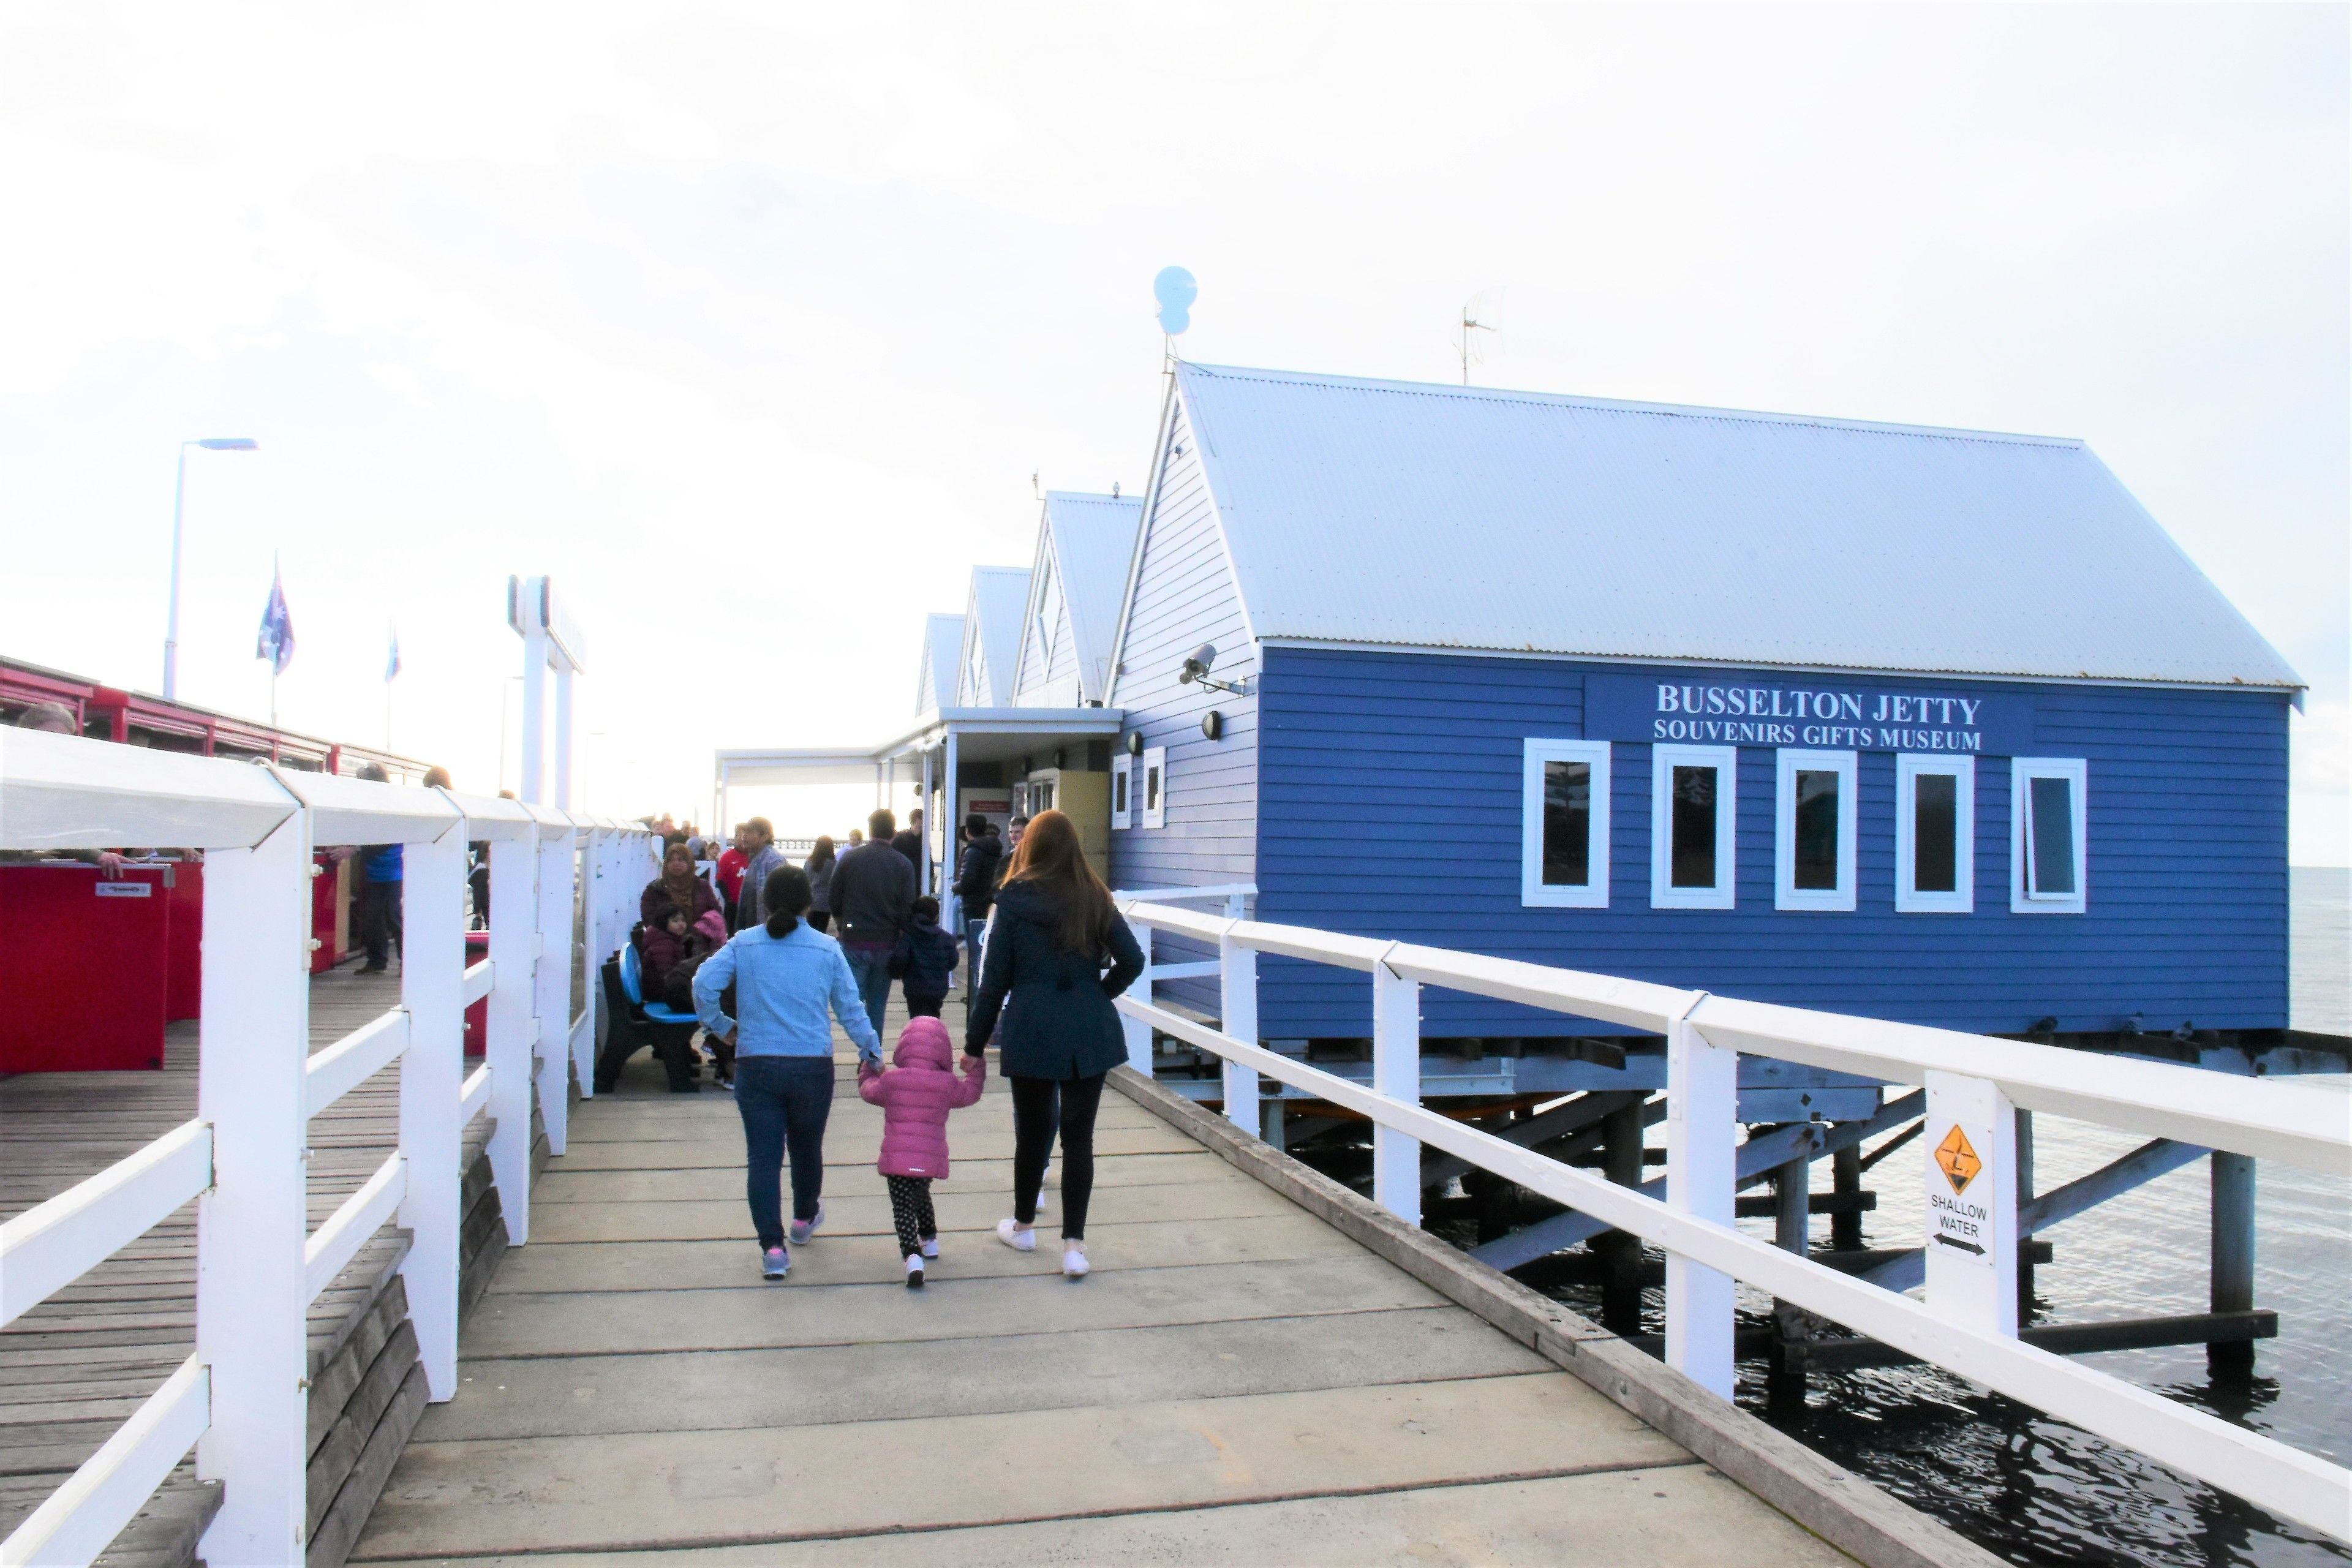 Busselton Jetty souvenirs gifts museum